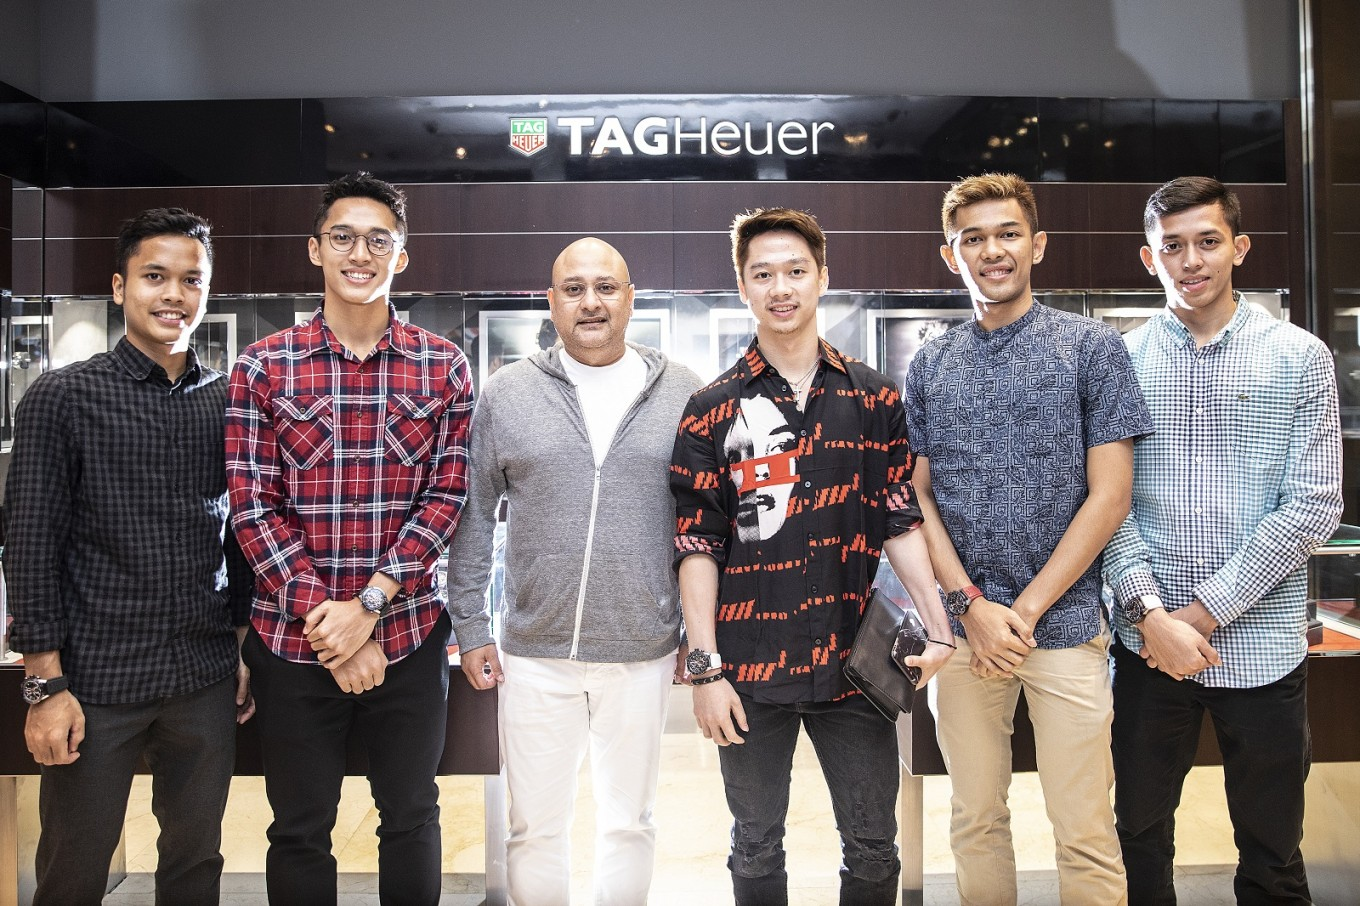 Asian Games: Indonesia men's badminton medalists receive TAG Heuer watches